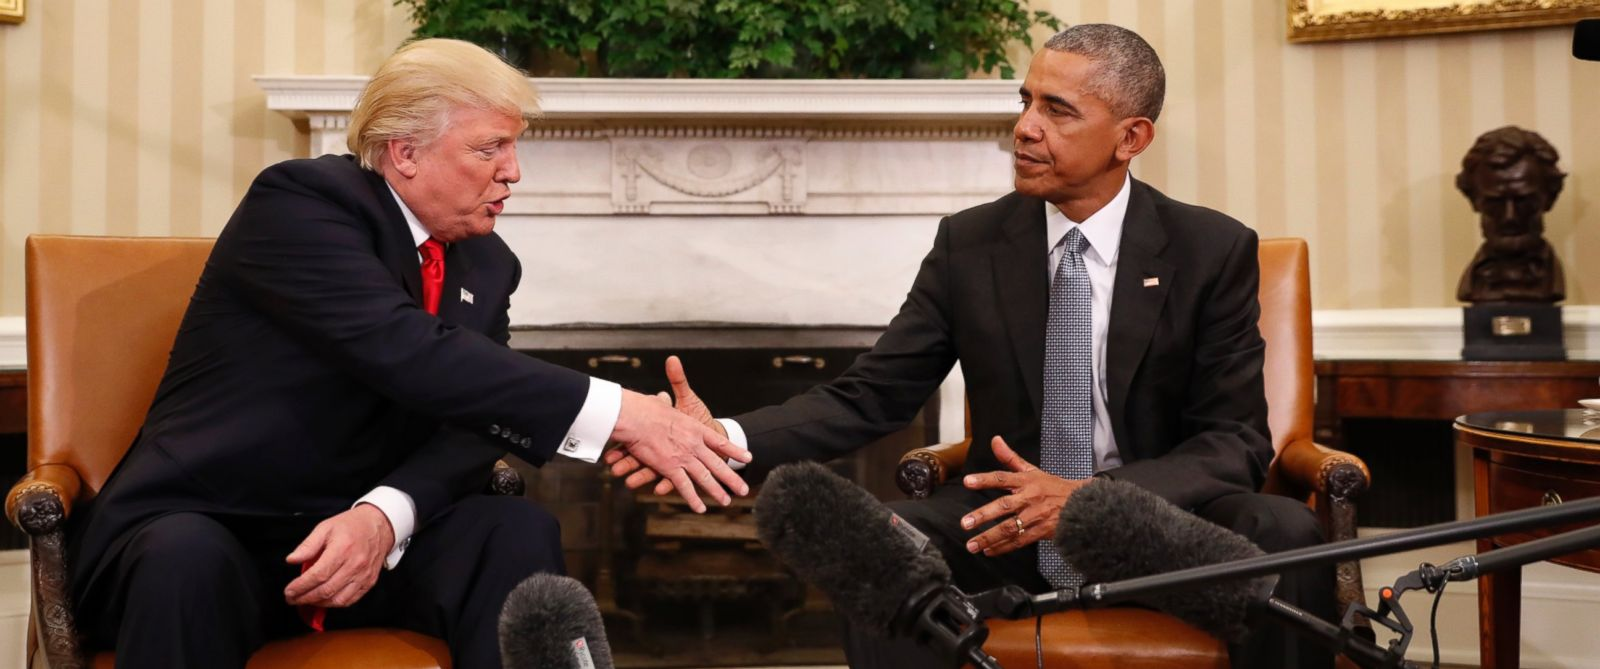 obama-meets-president-elect-trump